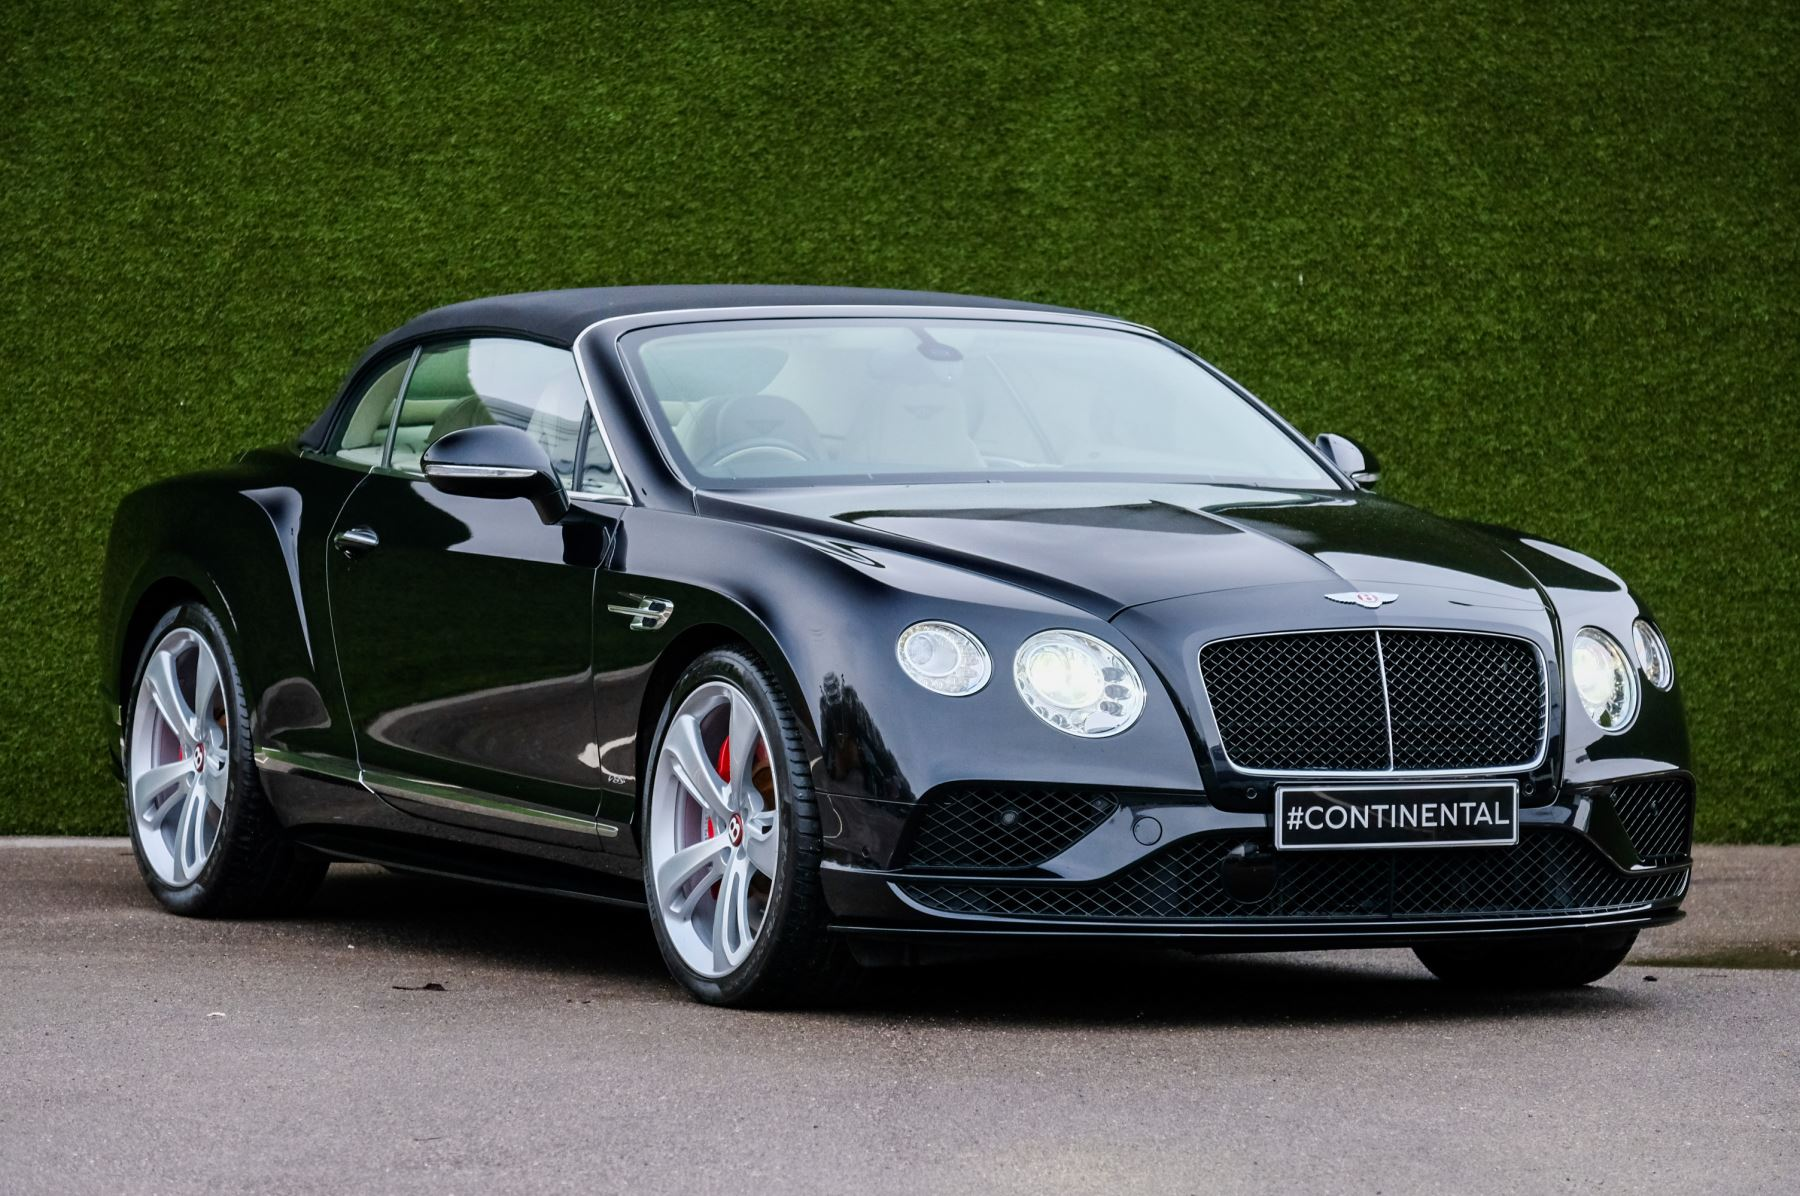 Bentley Continental GTC 4.0 V8 S Mulliner Driving Spec image 1